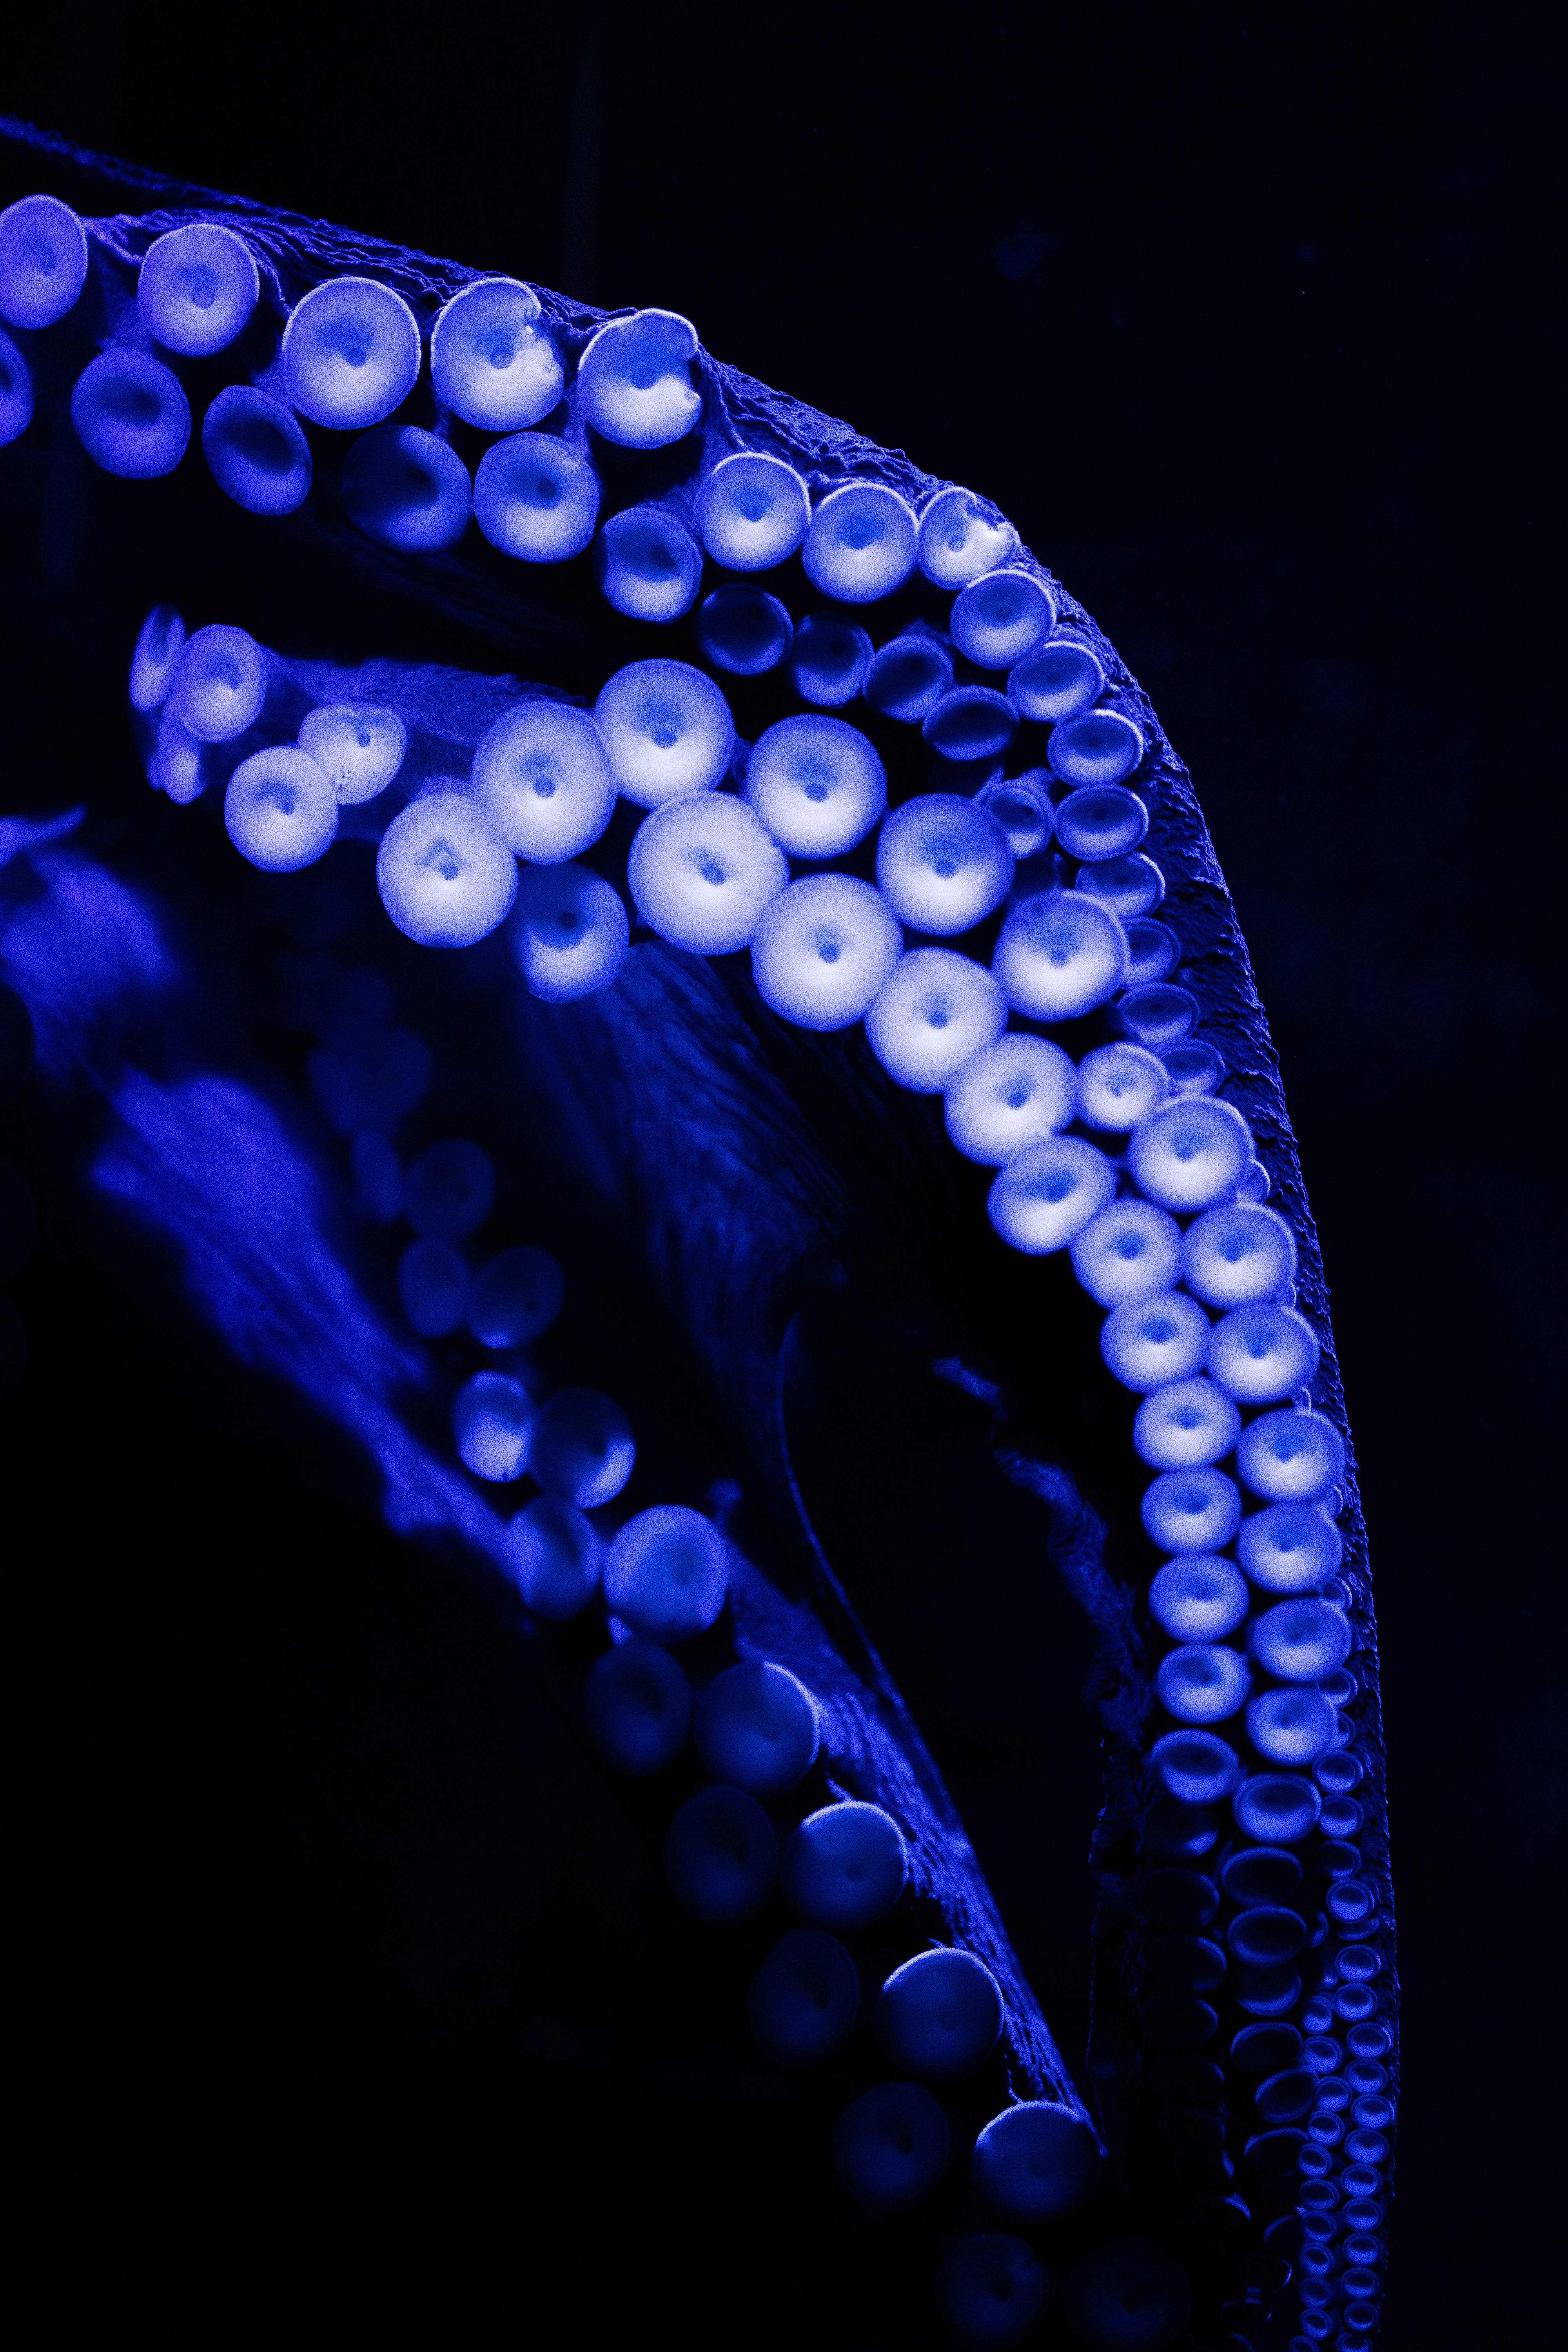 69282 download wallpaper Macro, Octopus, Tentacles, Close-Up, Dark screensavers and pictures for free